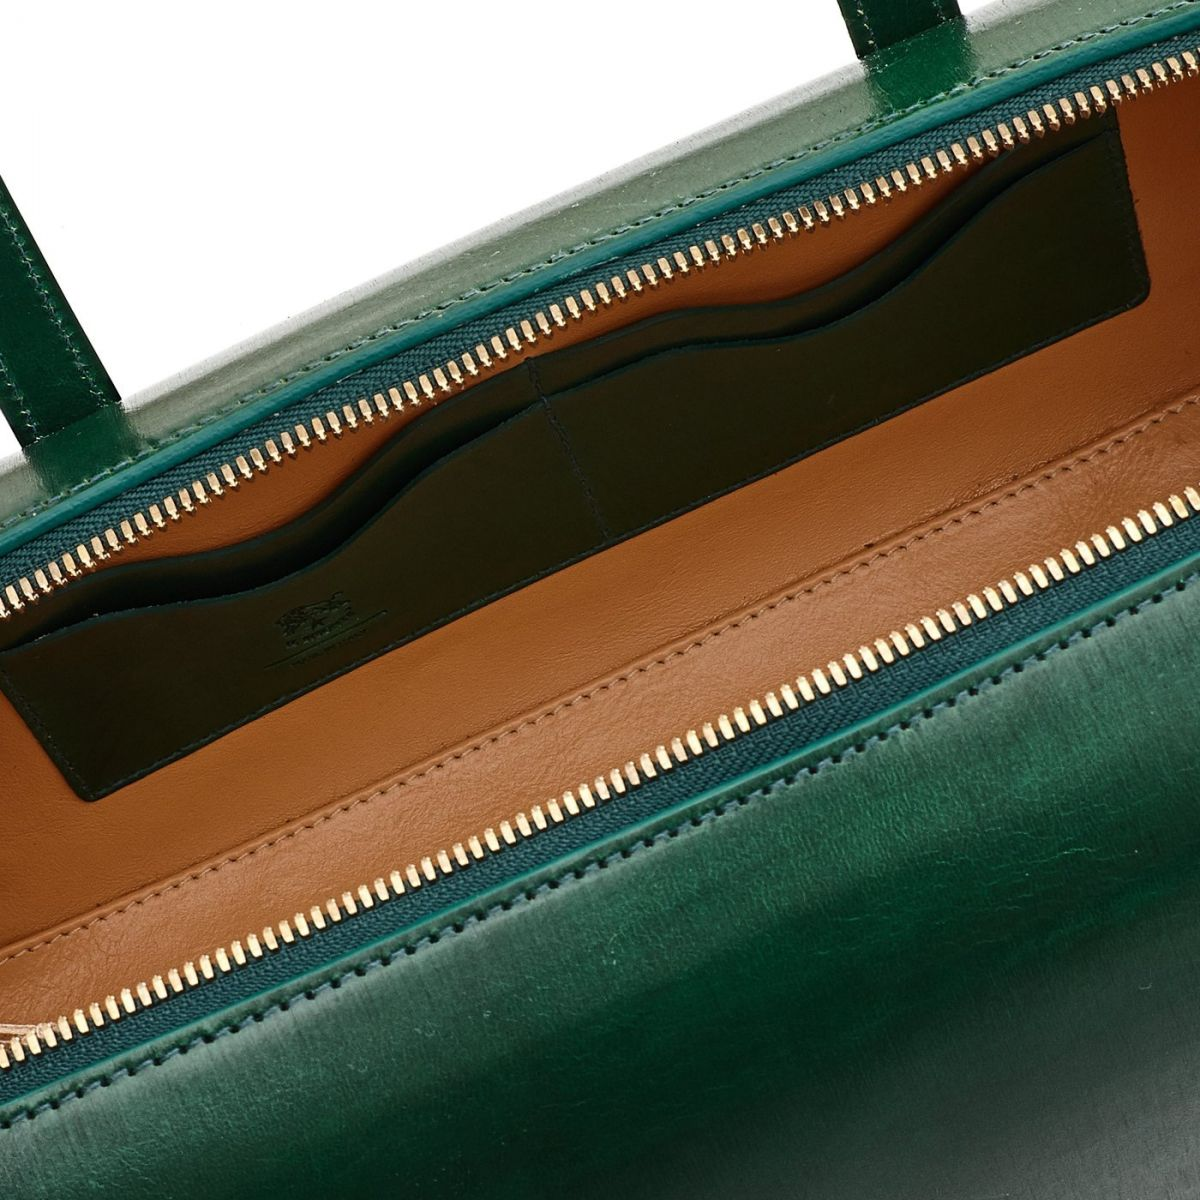 Women's Handbag  in Leather BTH103 color Green | Details